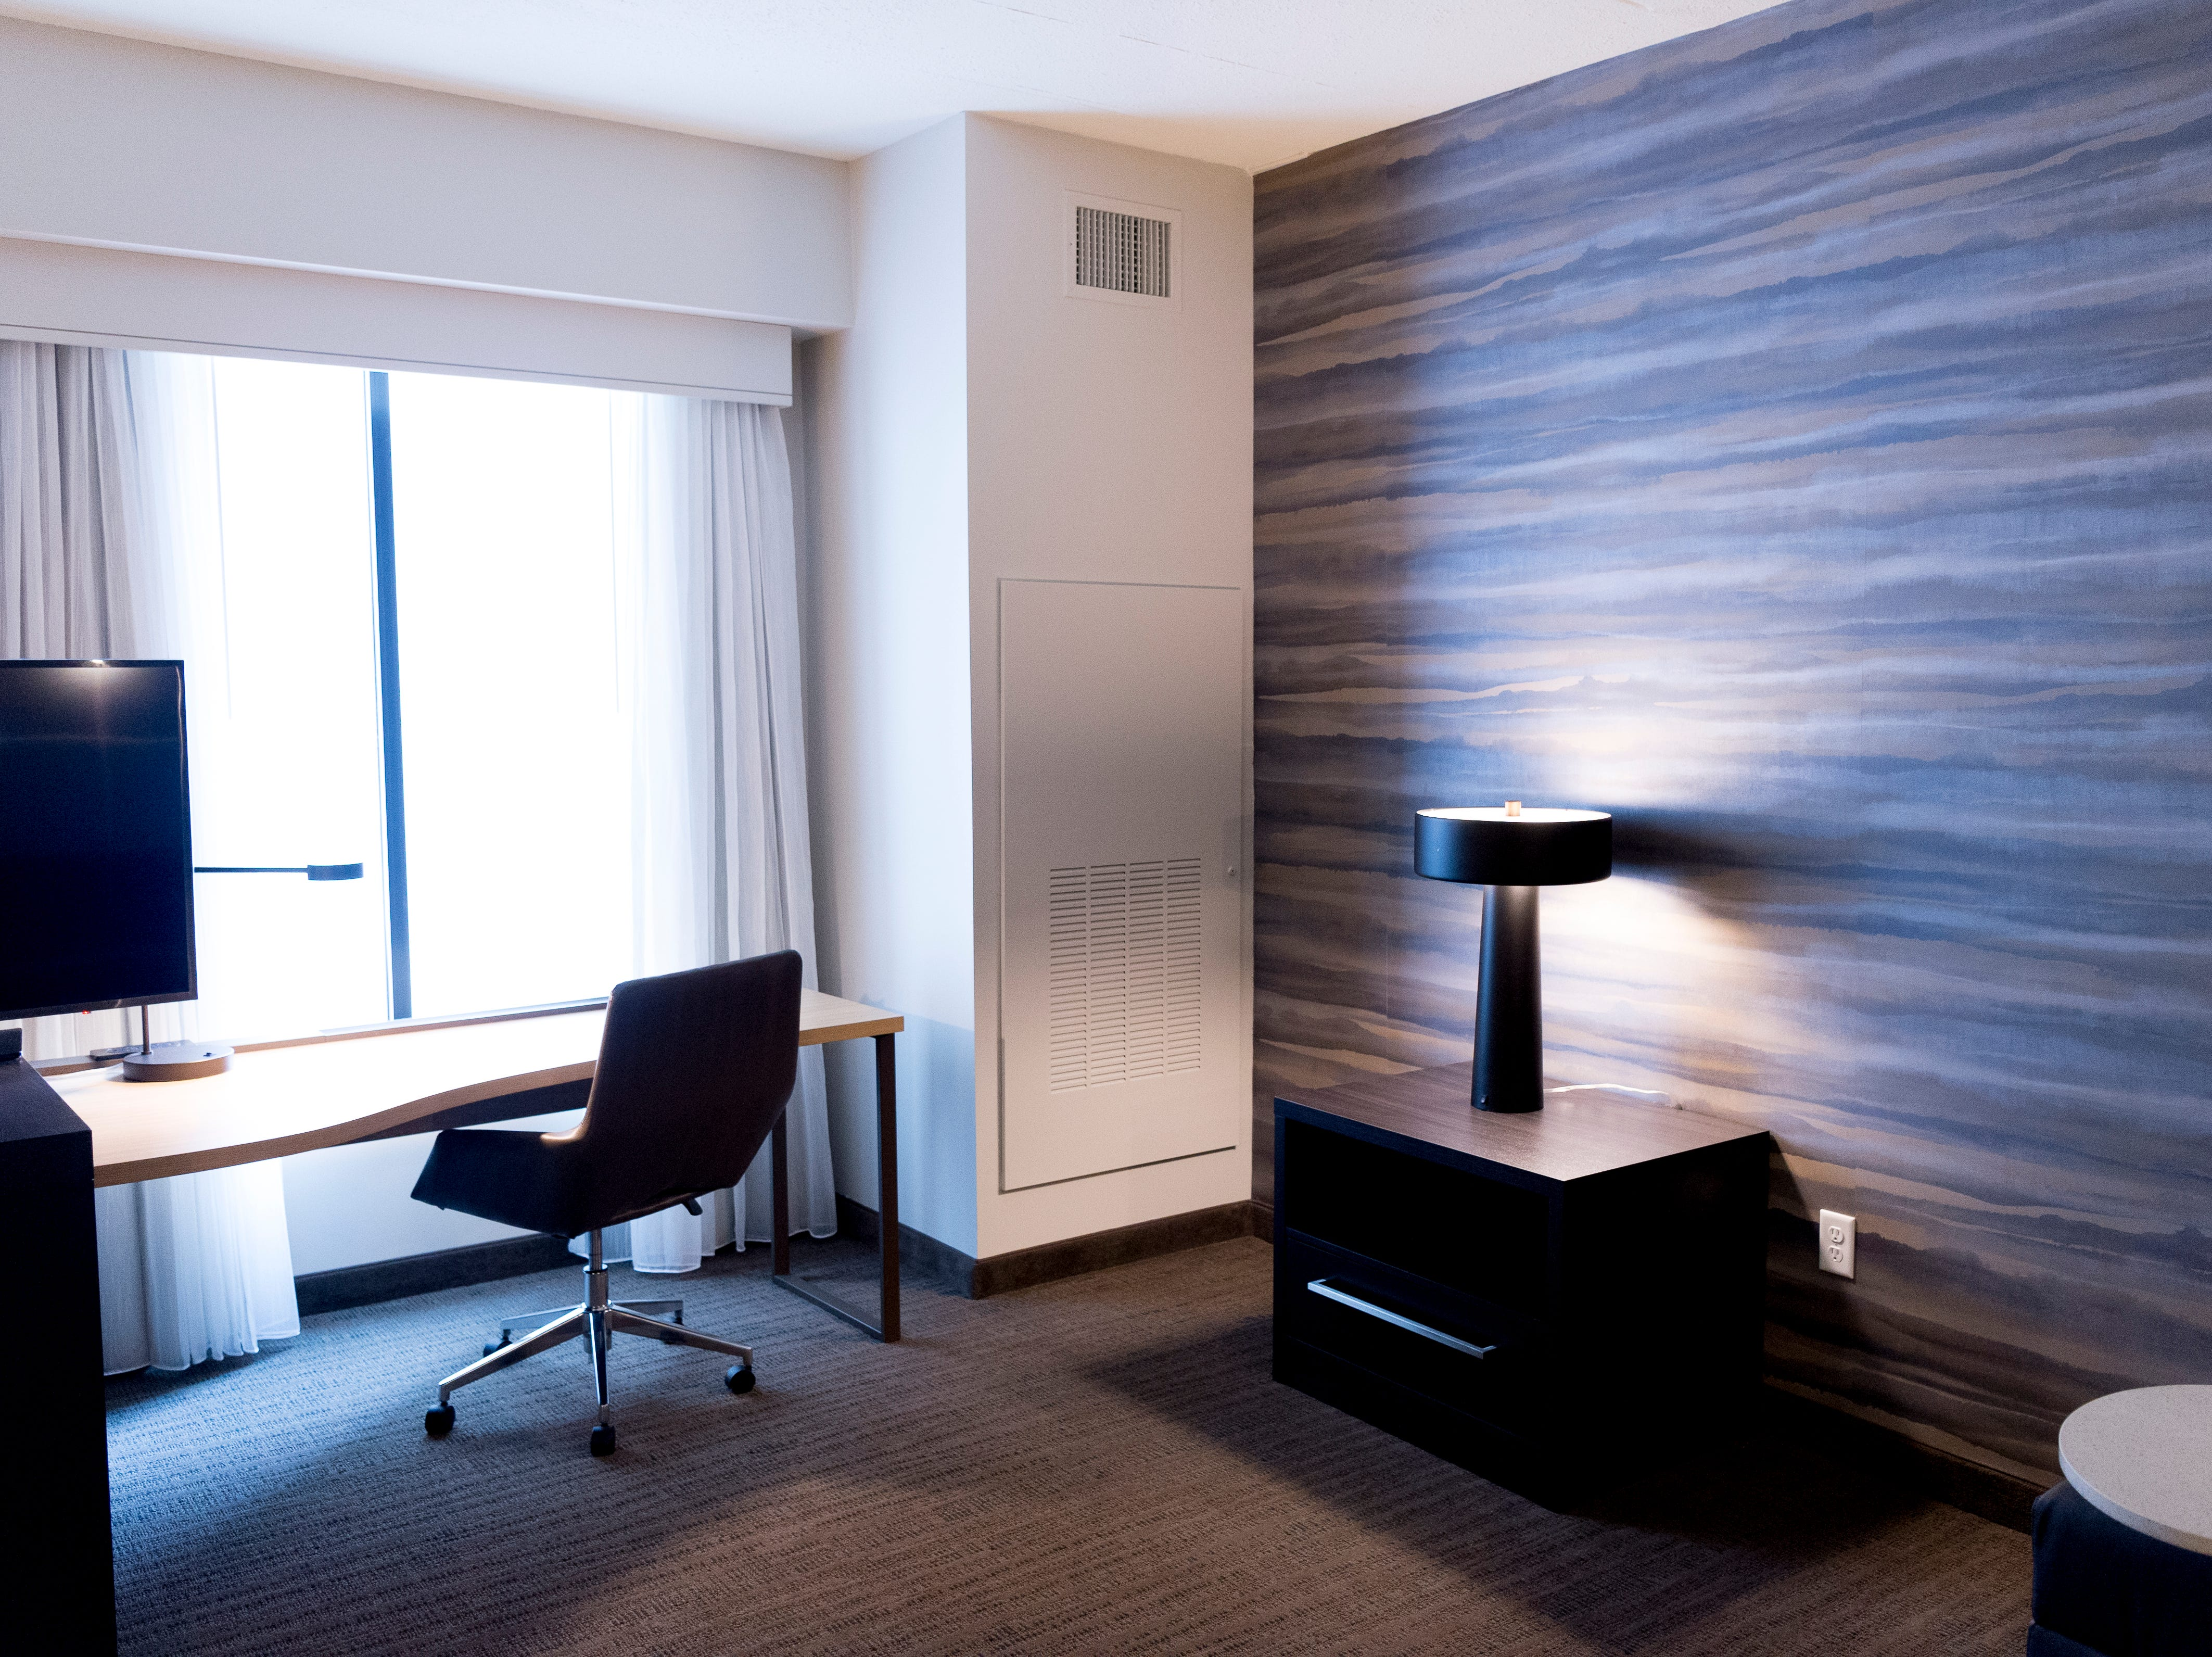 A view inside the Residence King Studio room at the new Courtyard and Residence Inn by Marriott at 210 Church Ave. in Knoxville, Tennessee on Monday, March 25, 2019. The hotel is the first of its kind in Knoxville to offer two different tiers of hospitality within the same building.